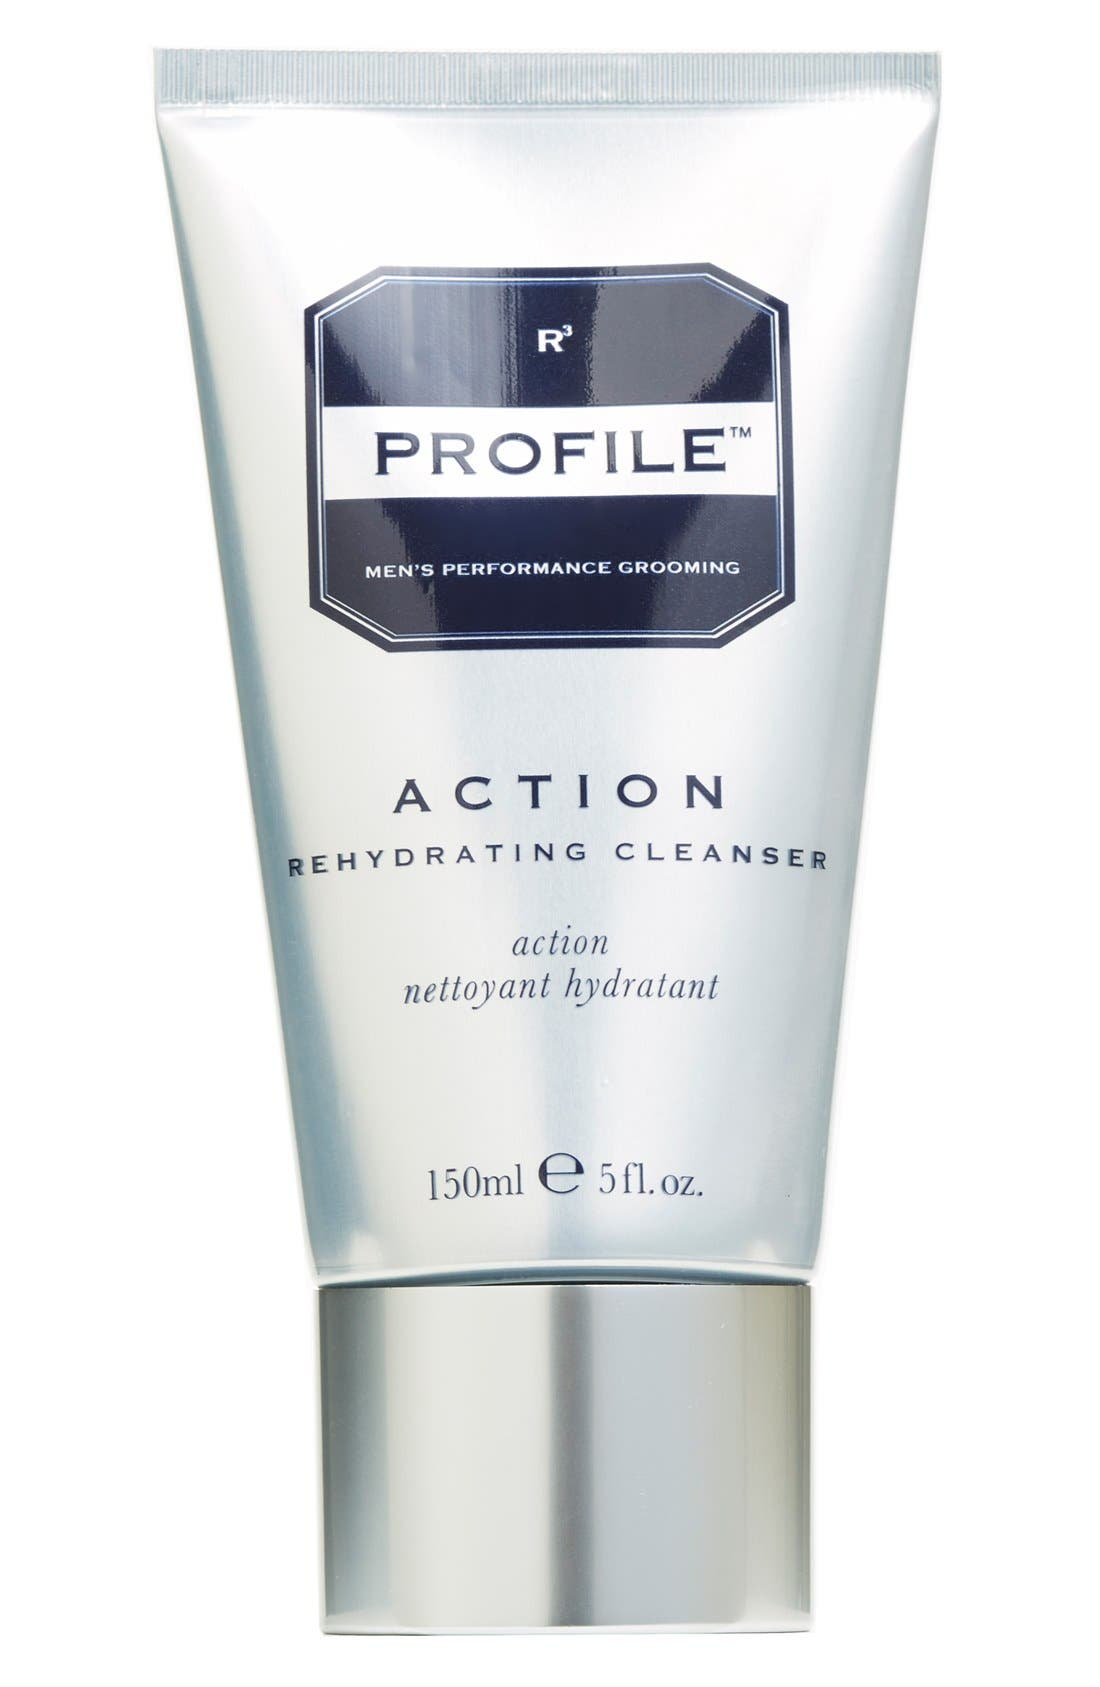 PROFILE® 'Action' Rehydrating Cleanser